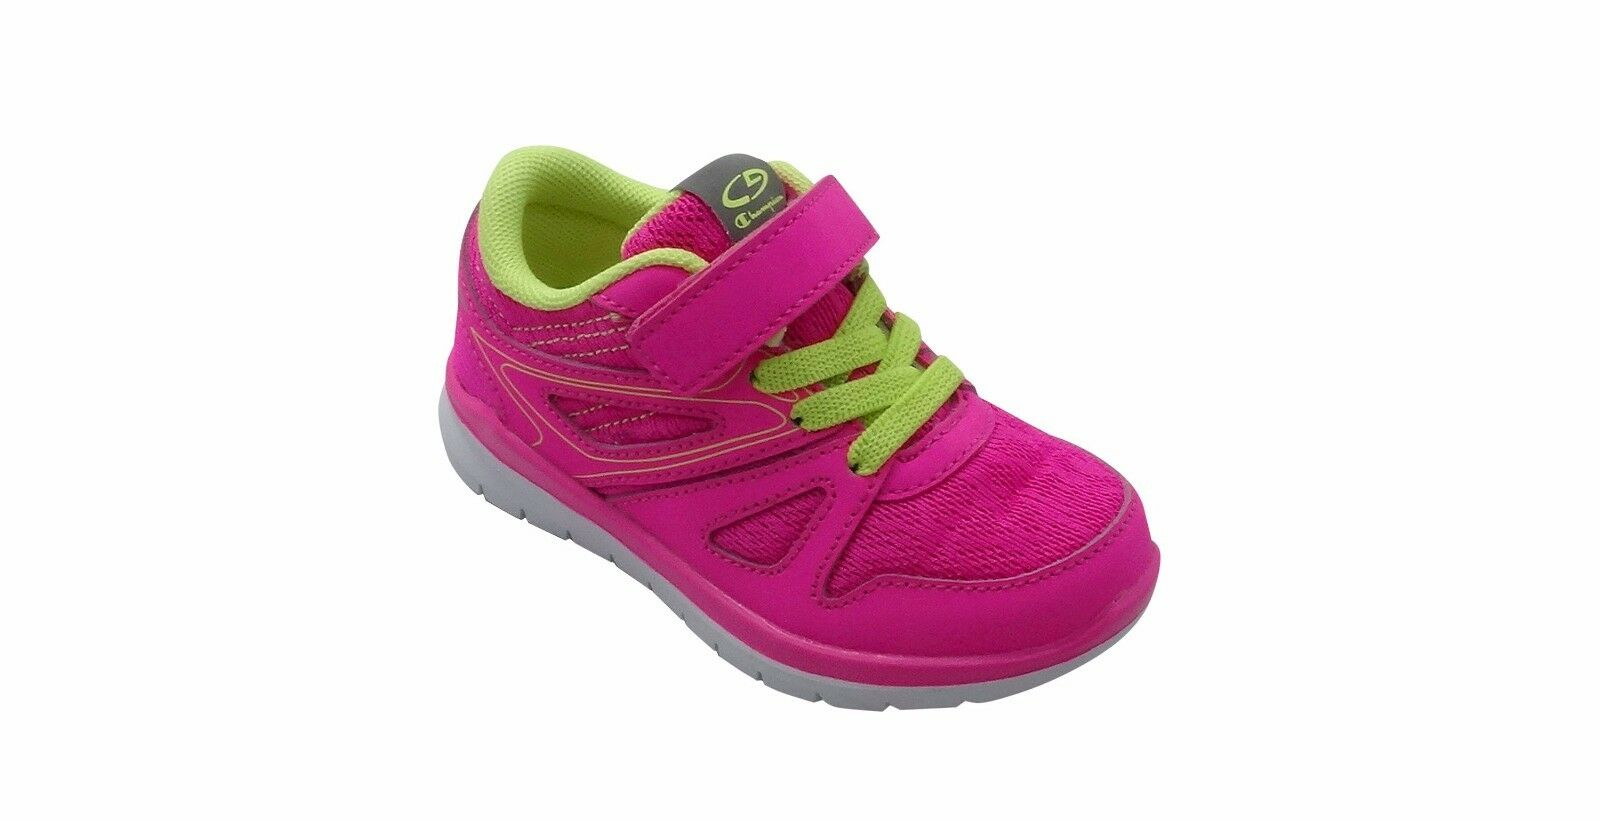 New Girls Toddler C9 Champion Drive 2 Athletic Shoes Pink 97